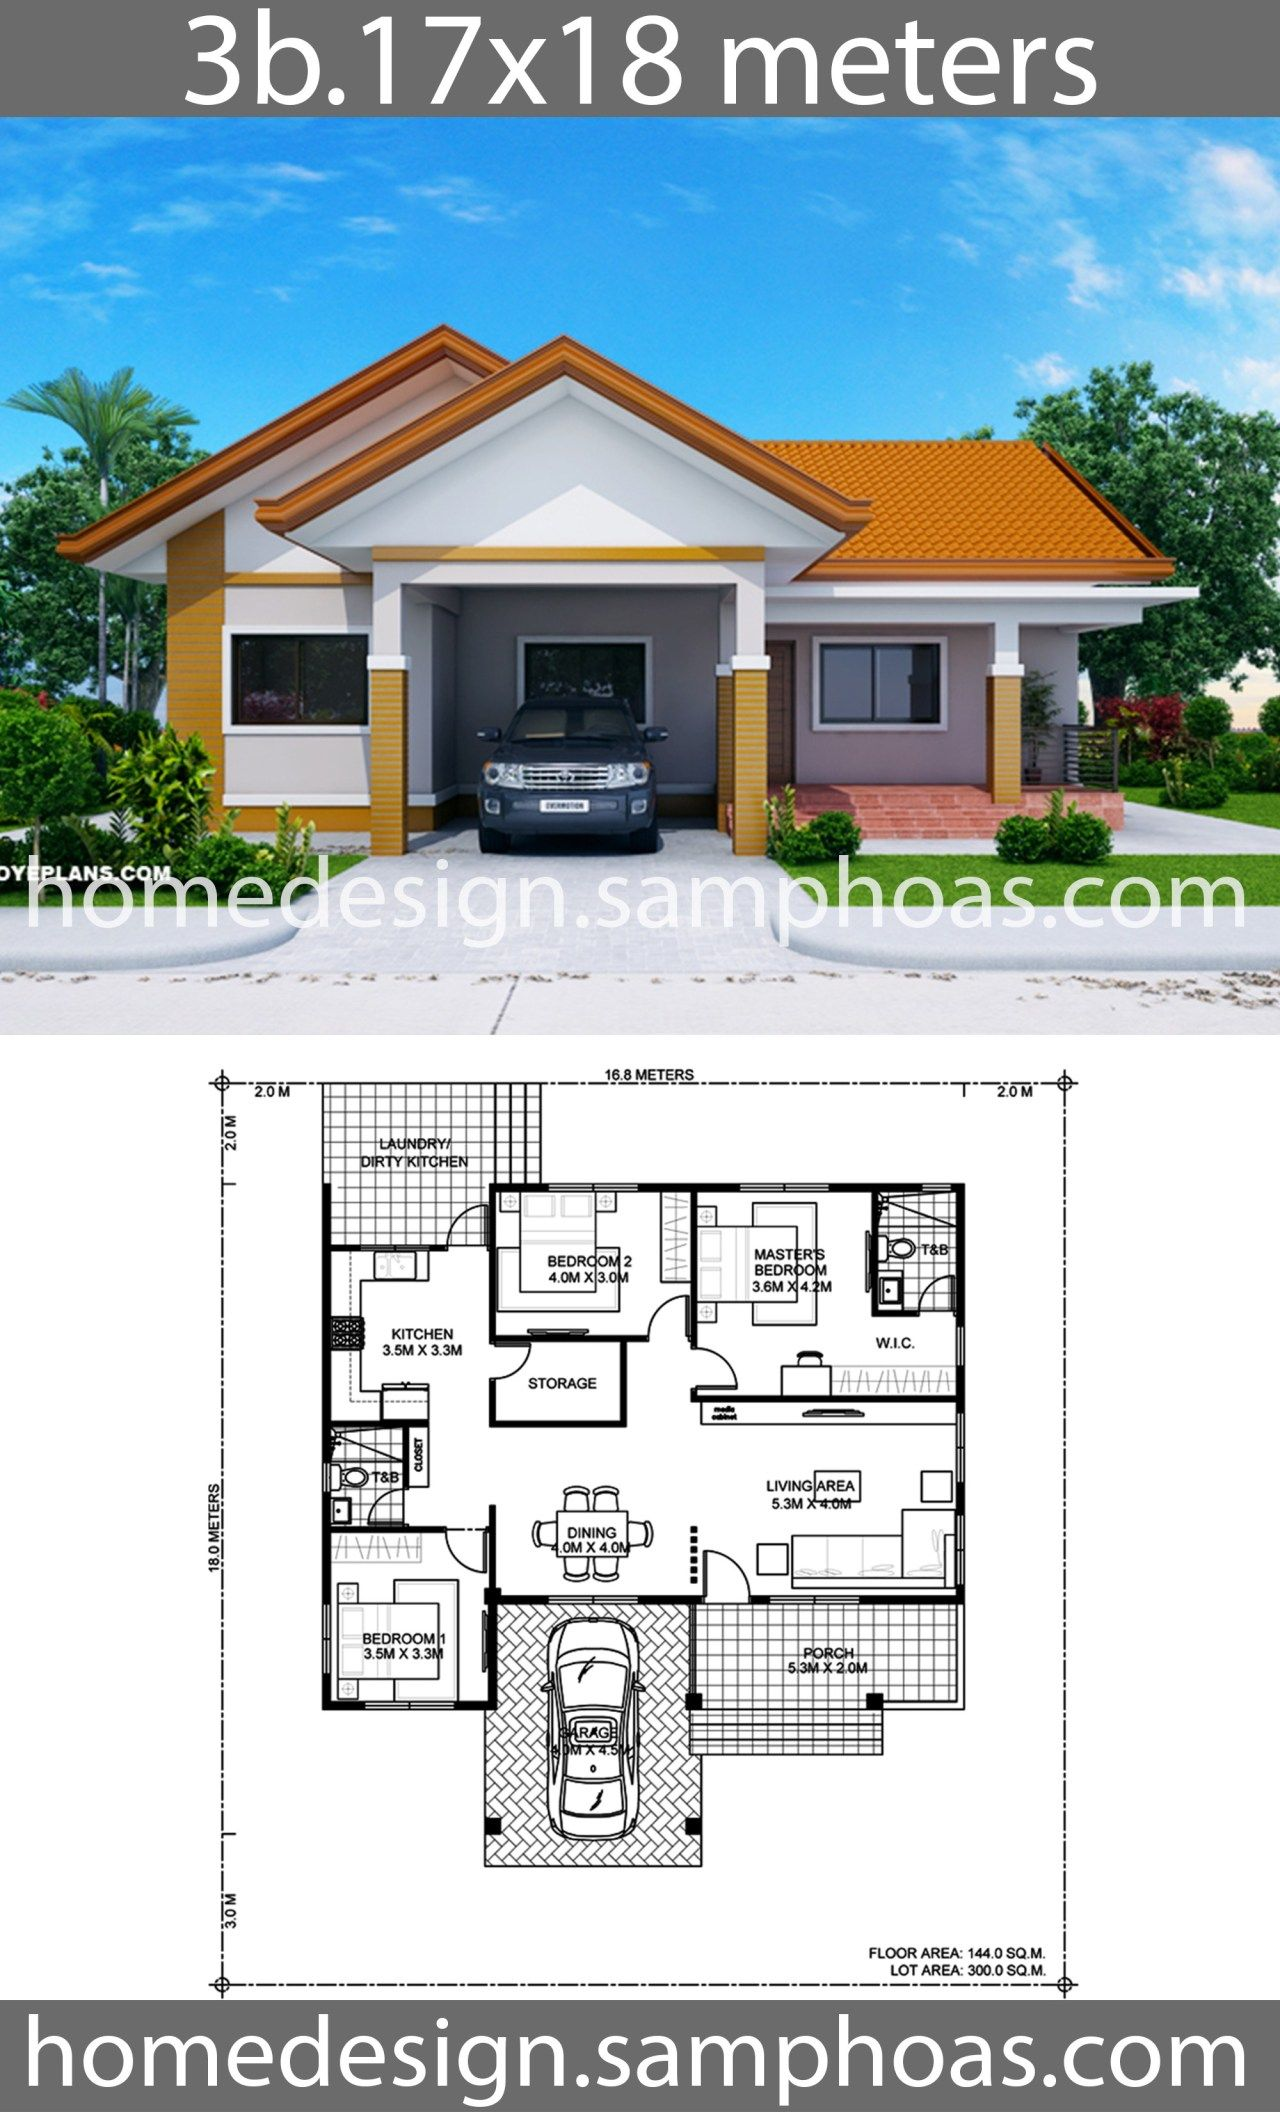 House Design Plans 17x18m With 3 Bedrooms Home Ideas House Plan Gallery House Construction Plan Bungalow House Floor Plans